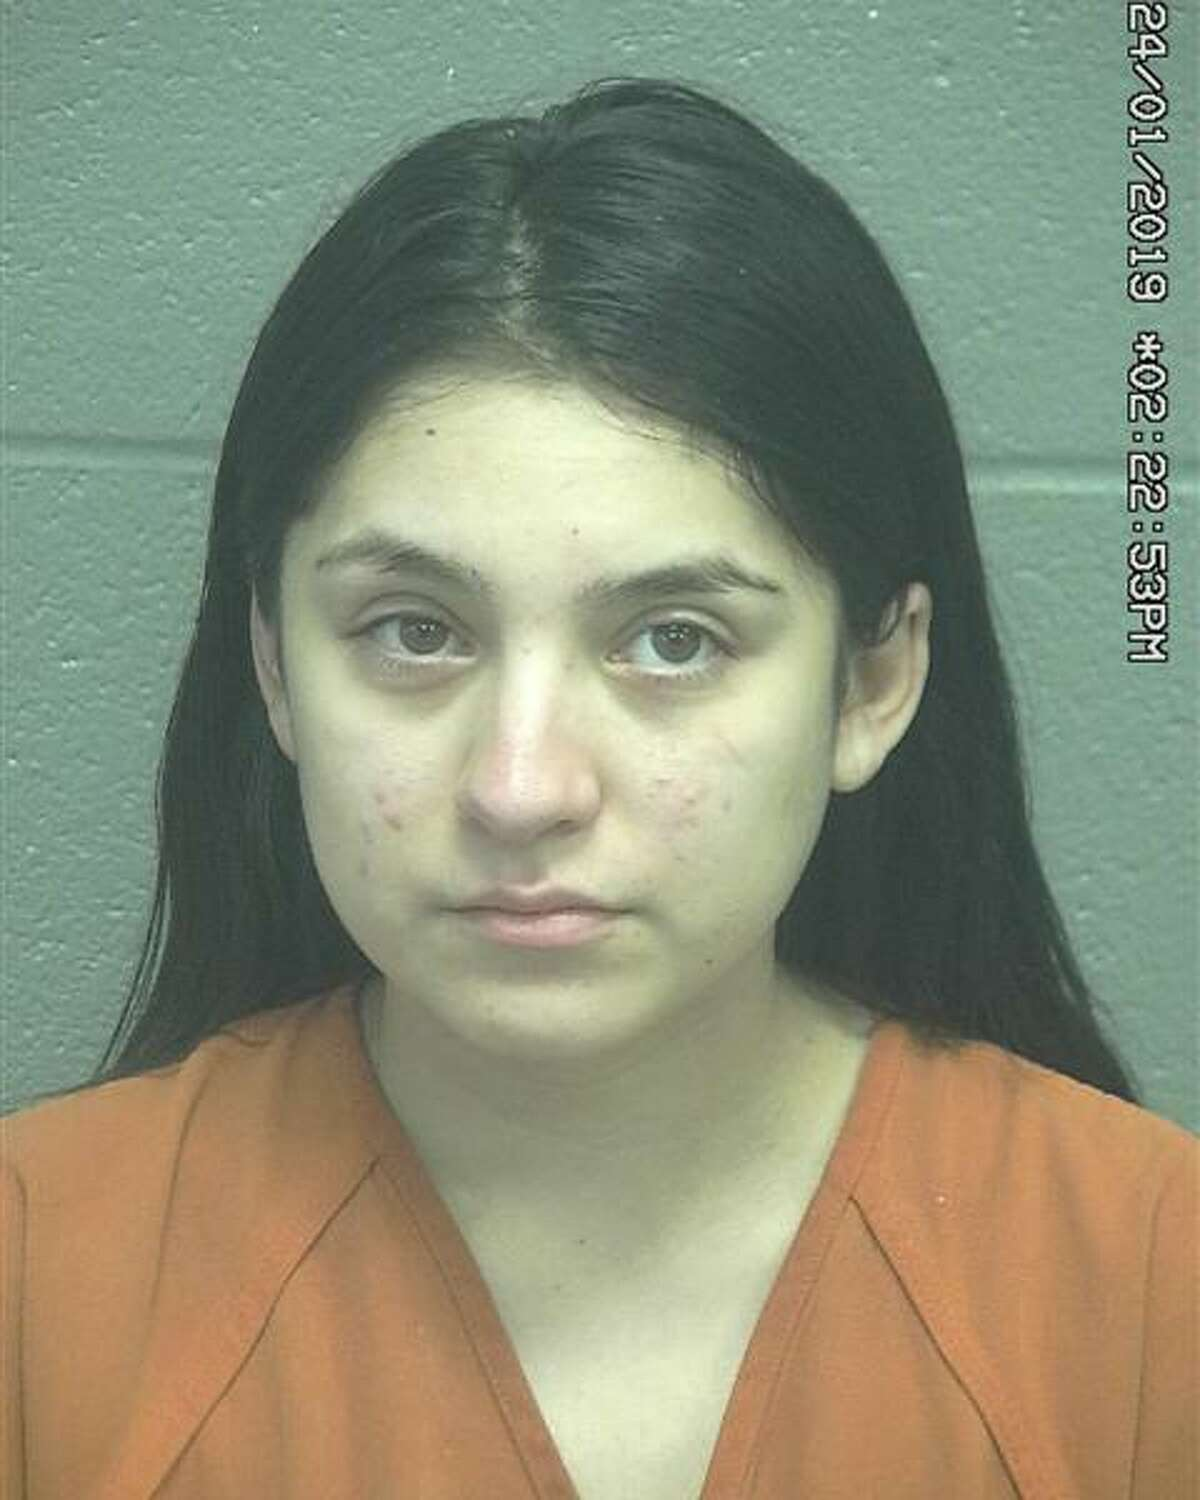 Megan Olivas, 22, Fort Stockton was arrested after an officer operating an undercover Facebook account messaged Garcia about purchasing dab cartridges and promethazine.